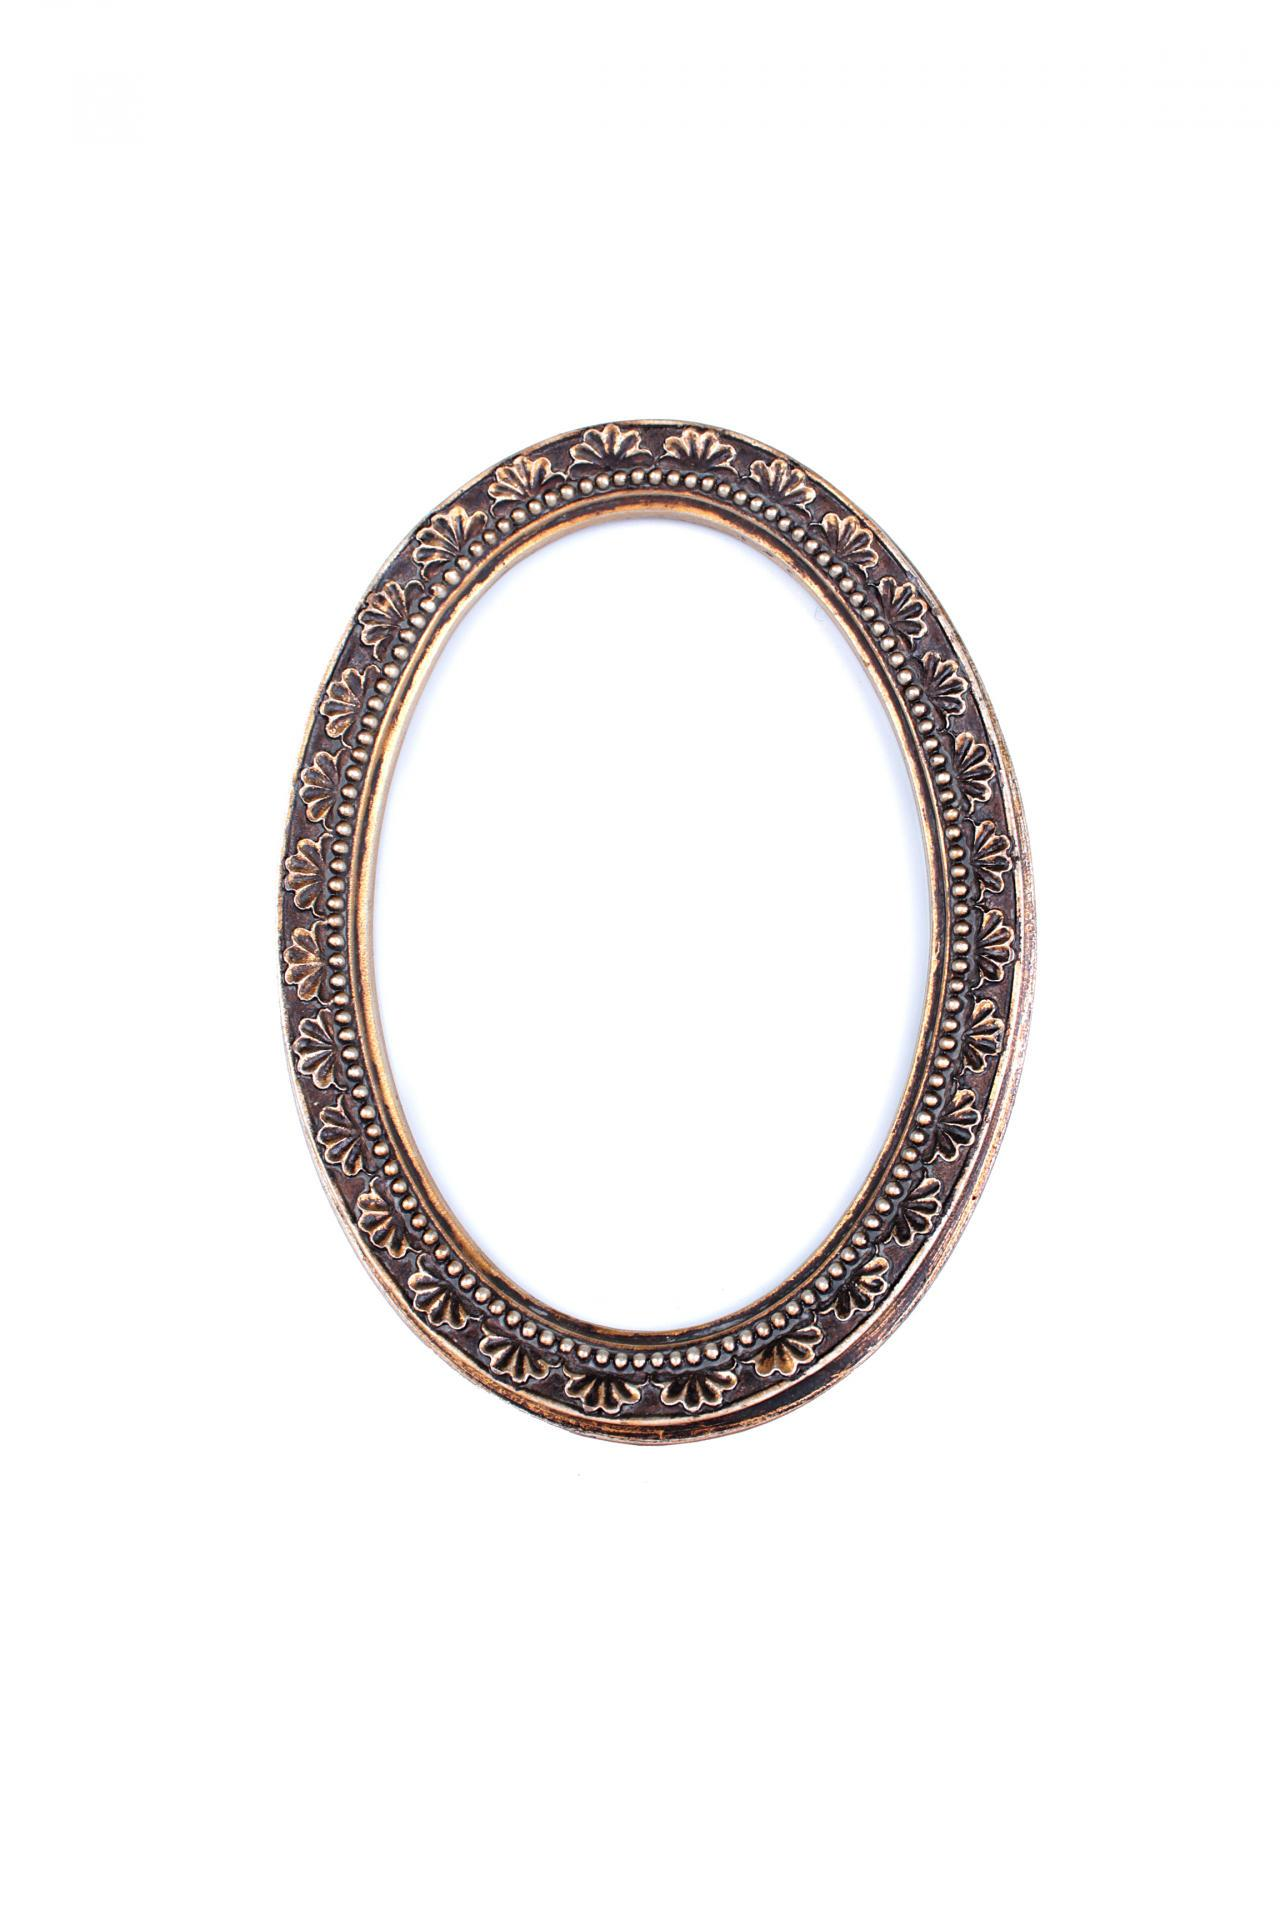 Chic Antique Fotorámeček Antik gold oval